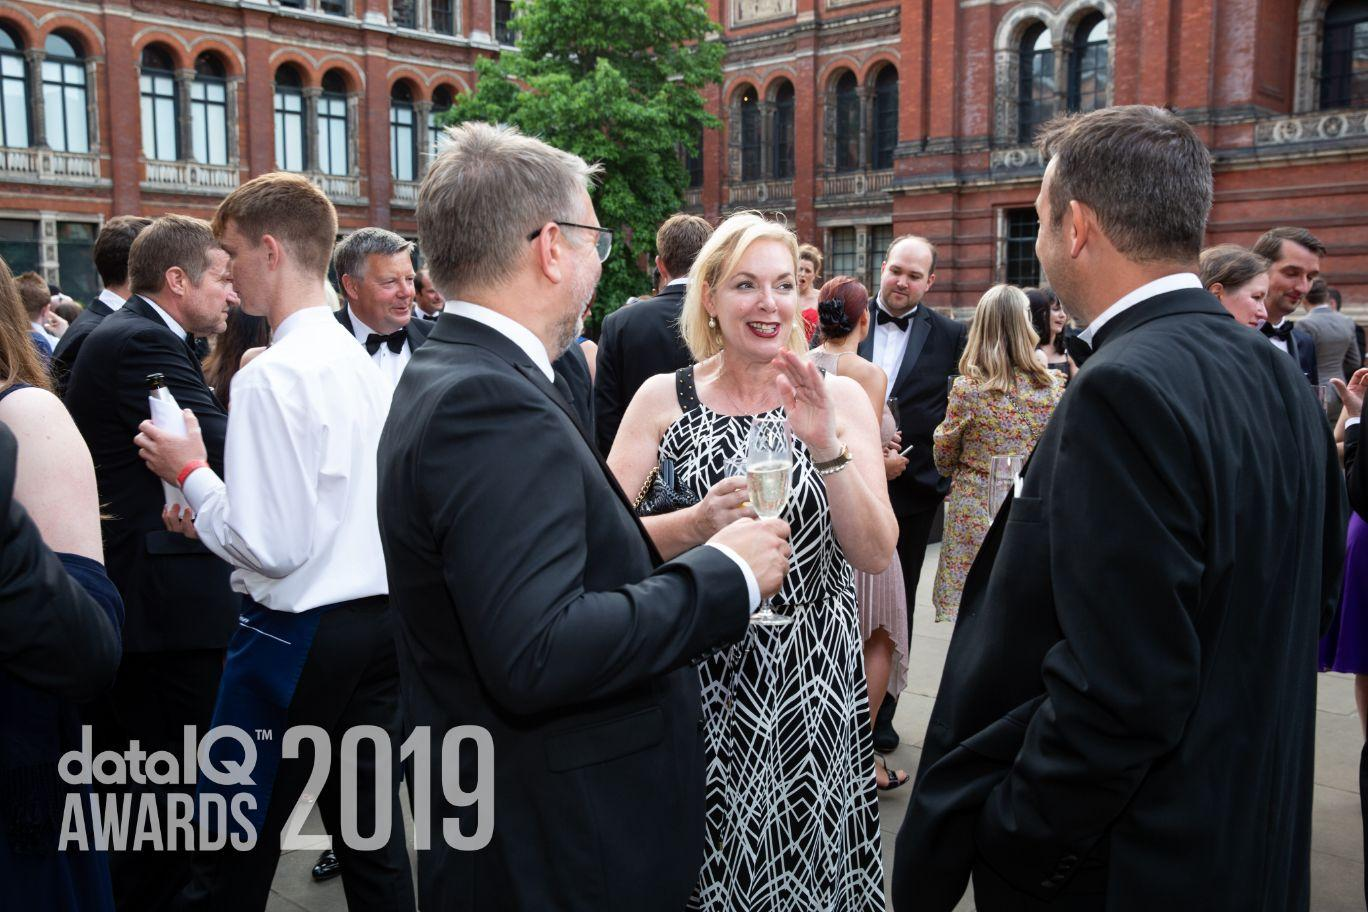 Awards 2019 Image 134